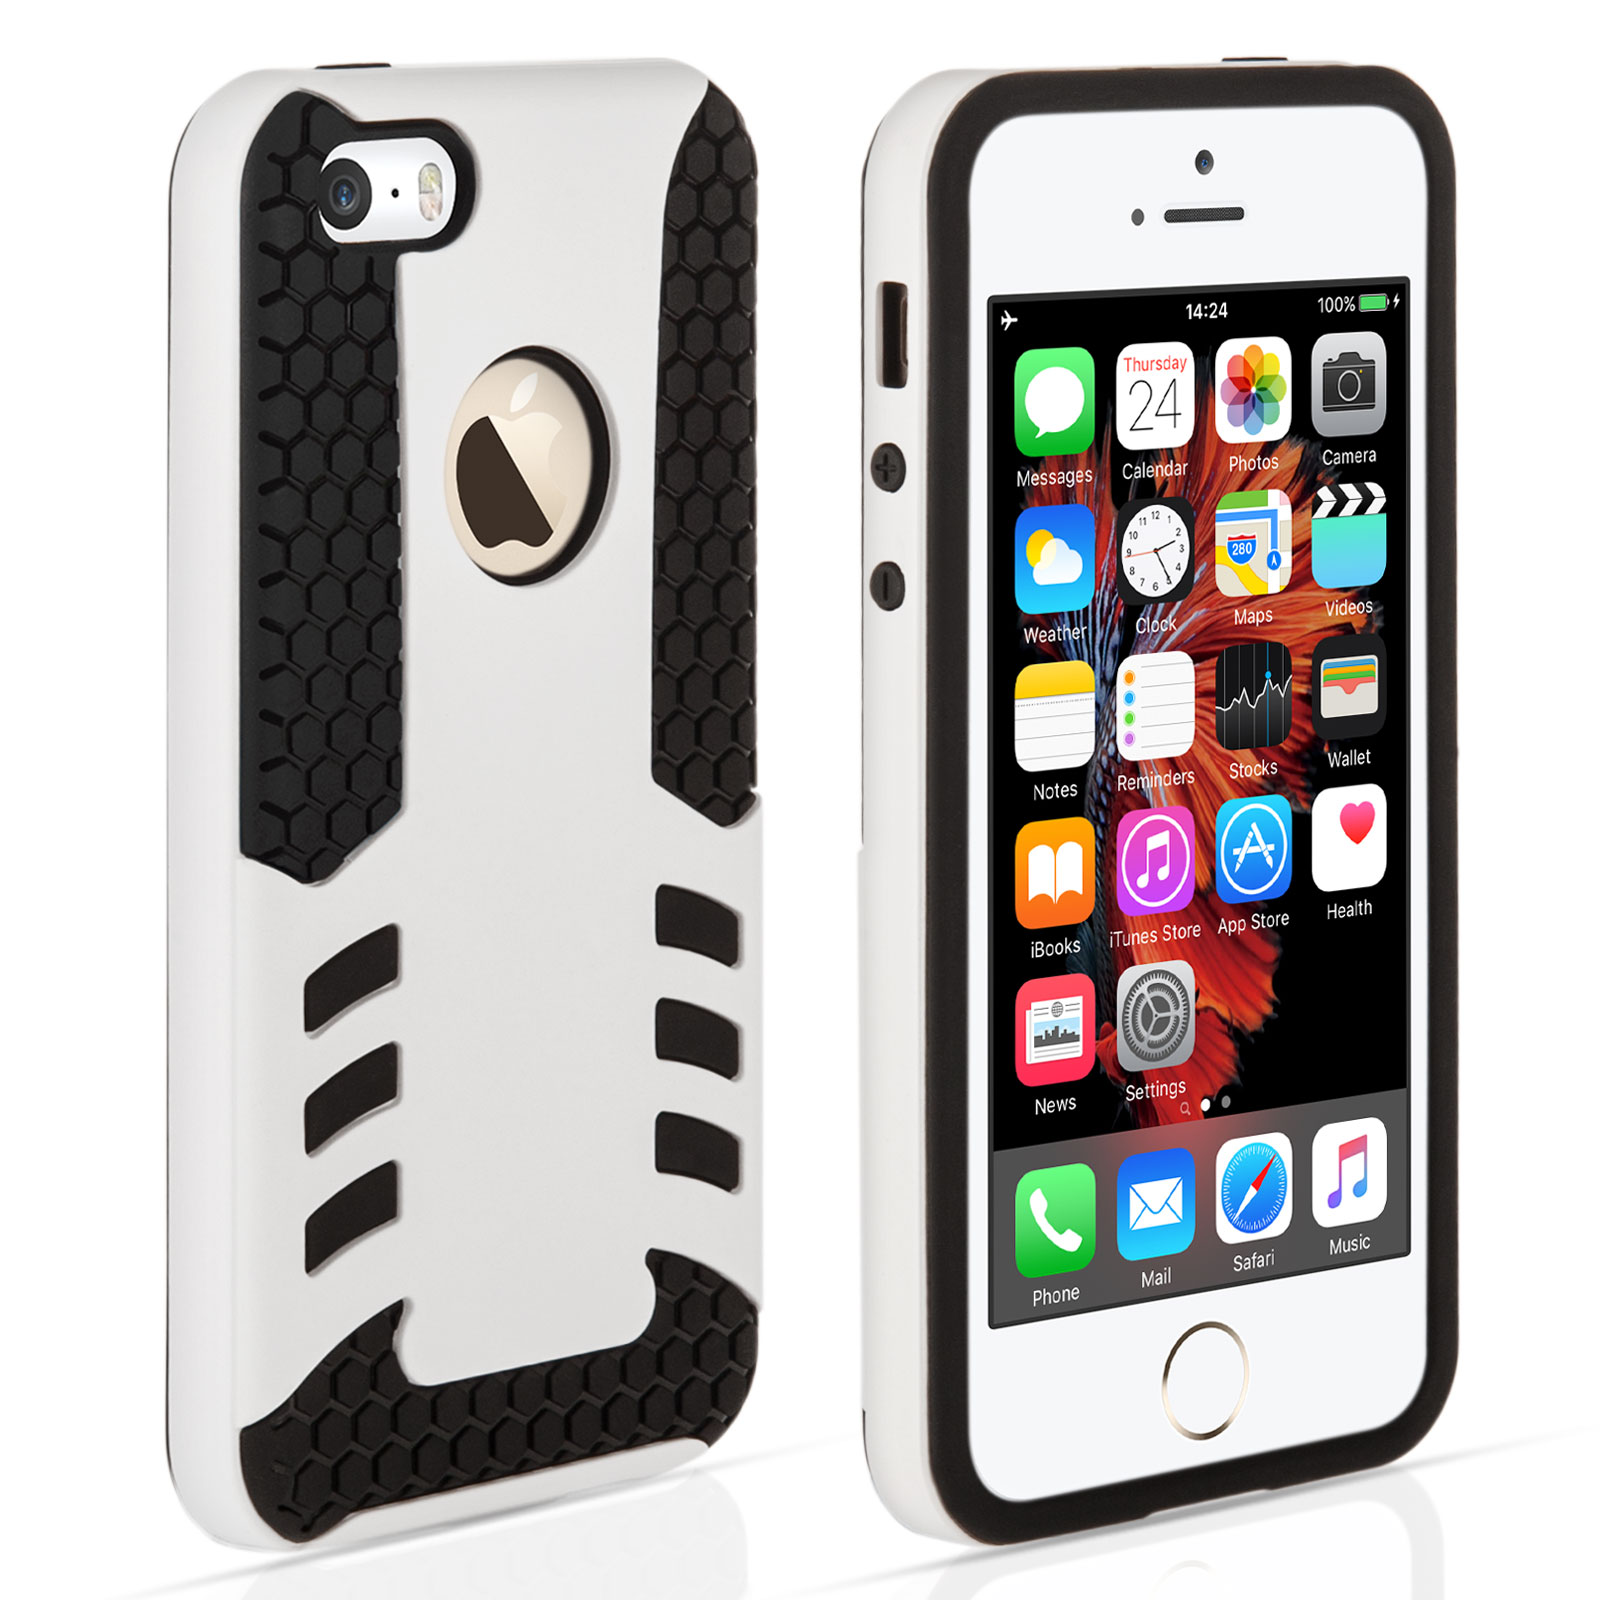 newest 04b1a a4c70 iPhone 5 And 5s / SE Border Combo Case - White